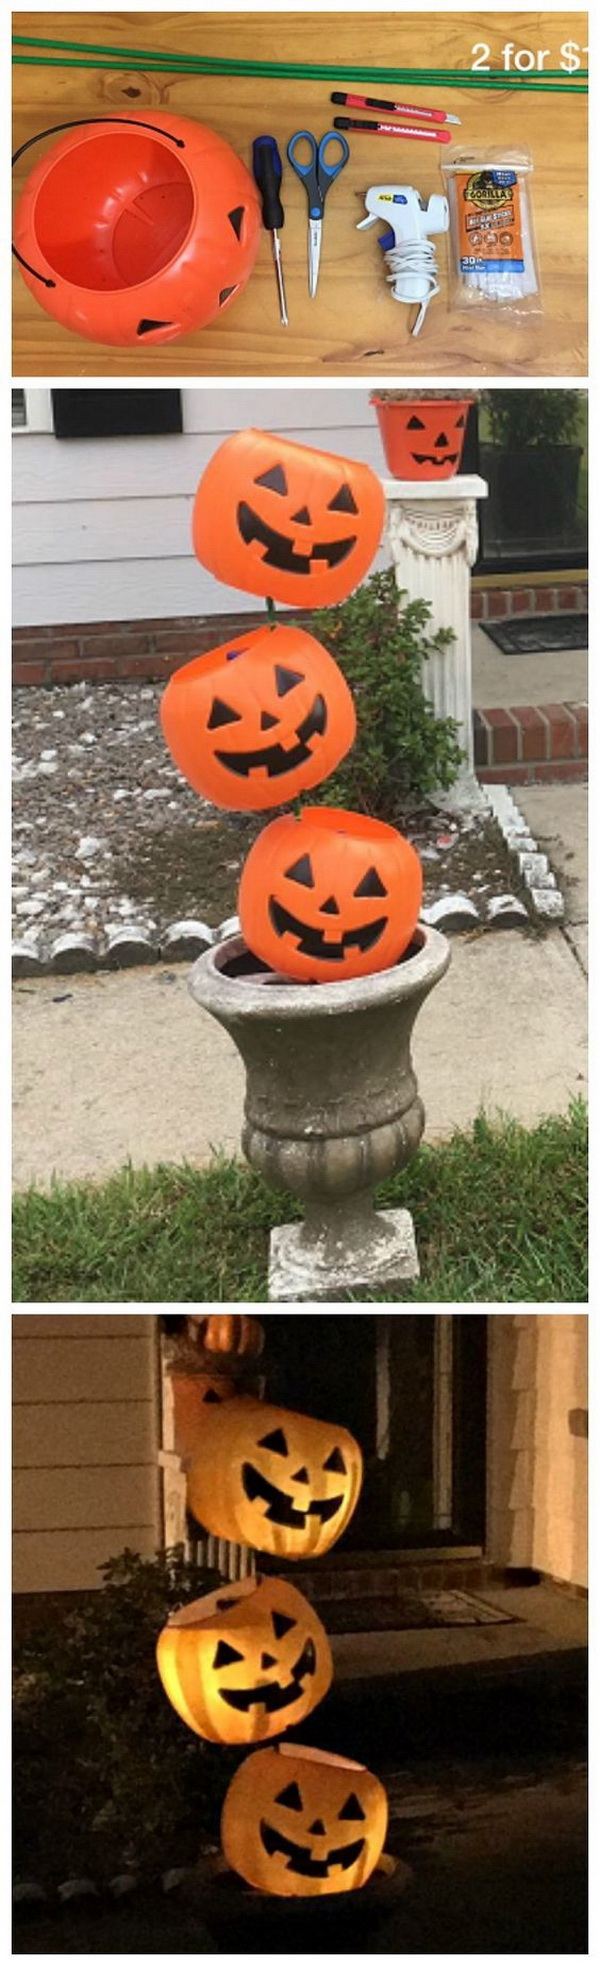 30 homemade halloween decoration ideas listing more tipsy plastic pumpkin decoration another stunning diy decoration idea for your front porch for this solutioingenieria Images